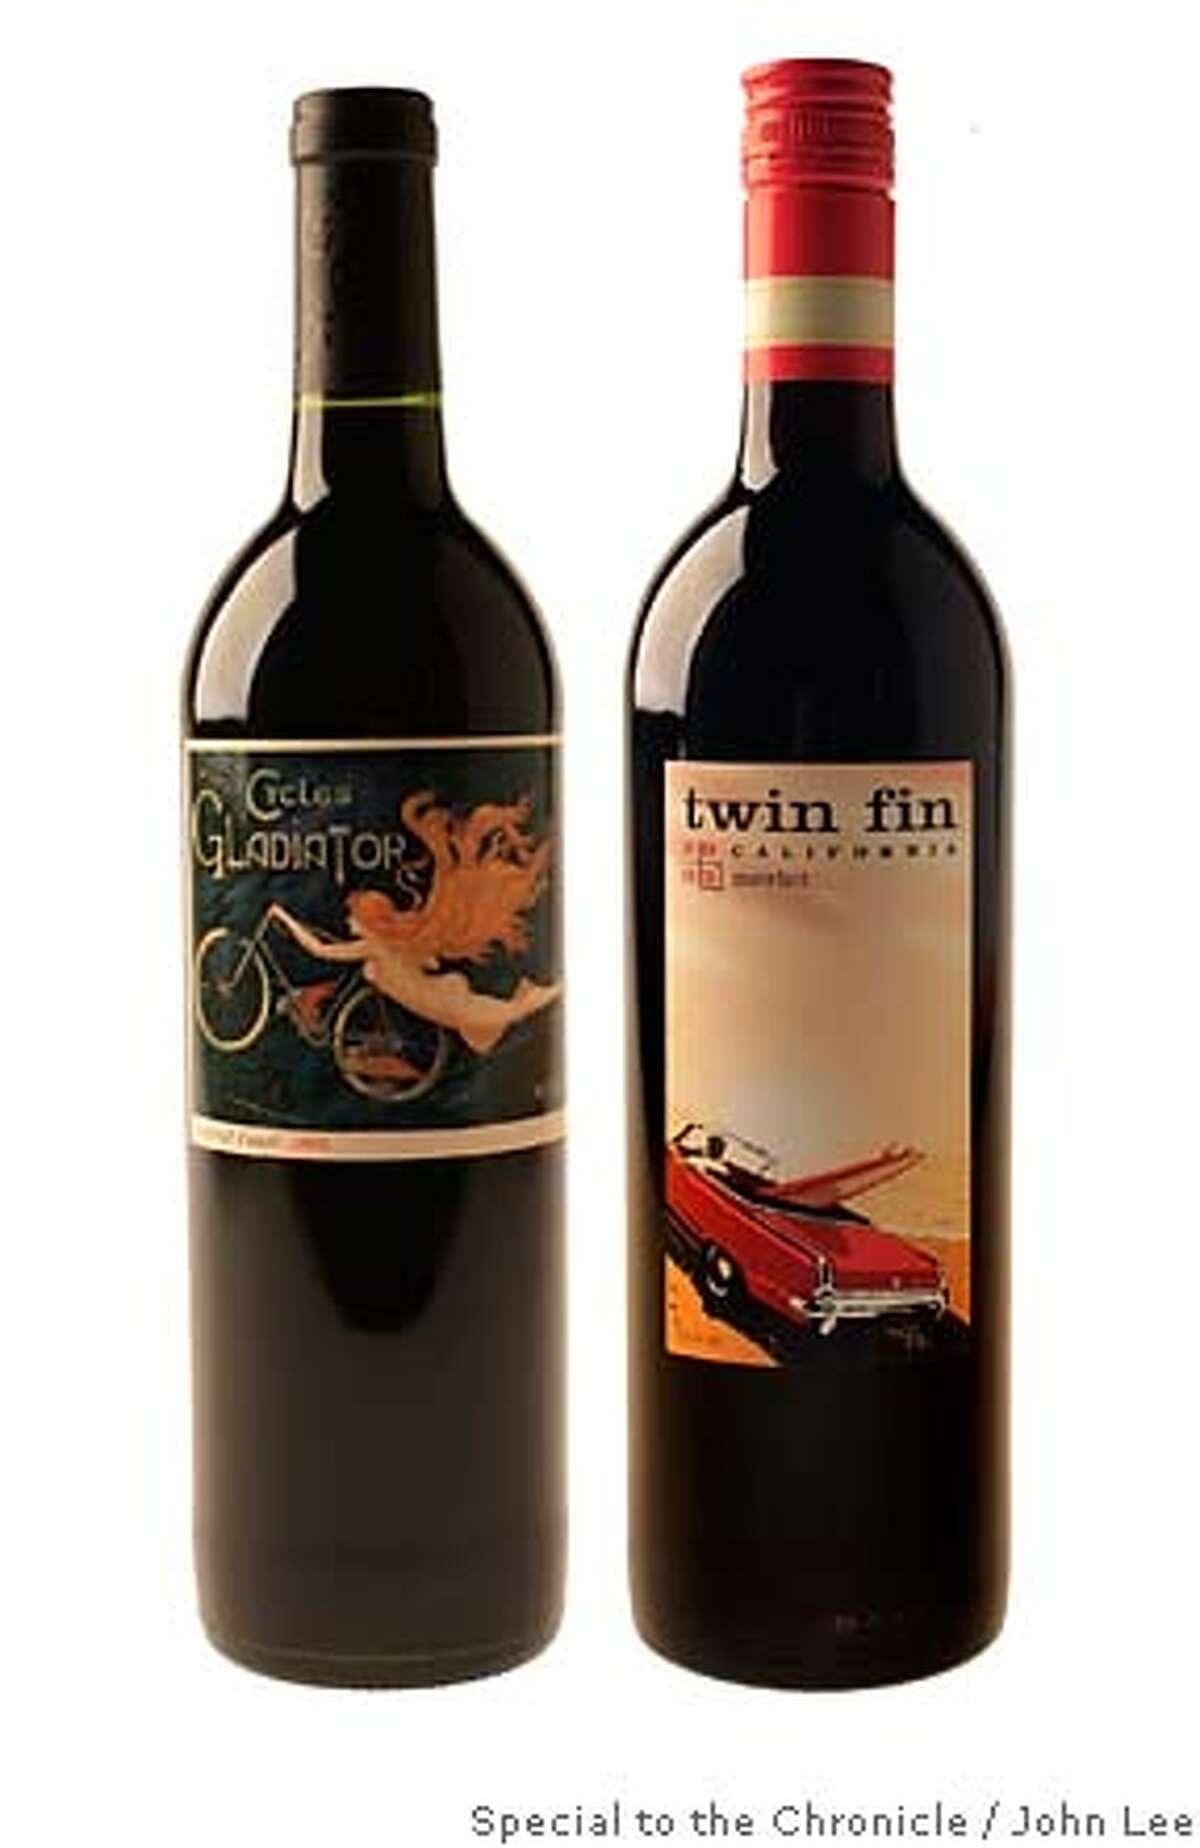 BARGAINS16_01JOHNLEE.JPG 2004 Cycles Gladiator Central Coast Merlot. 2003 Twin Fin California Merlot. By JOHN LEE/SPECIAL TO THE CHRONICLE